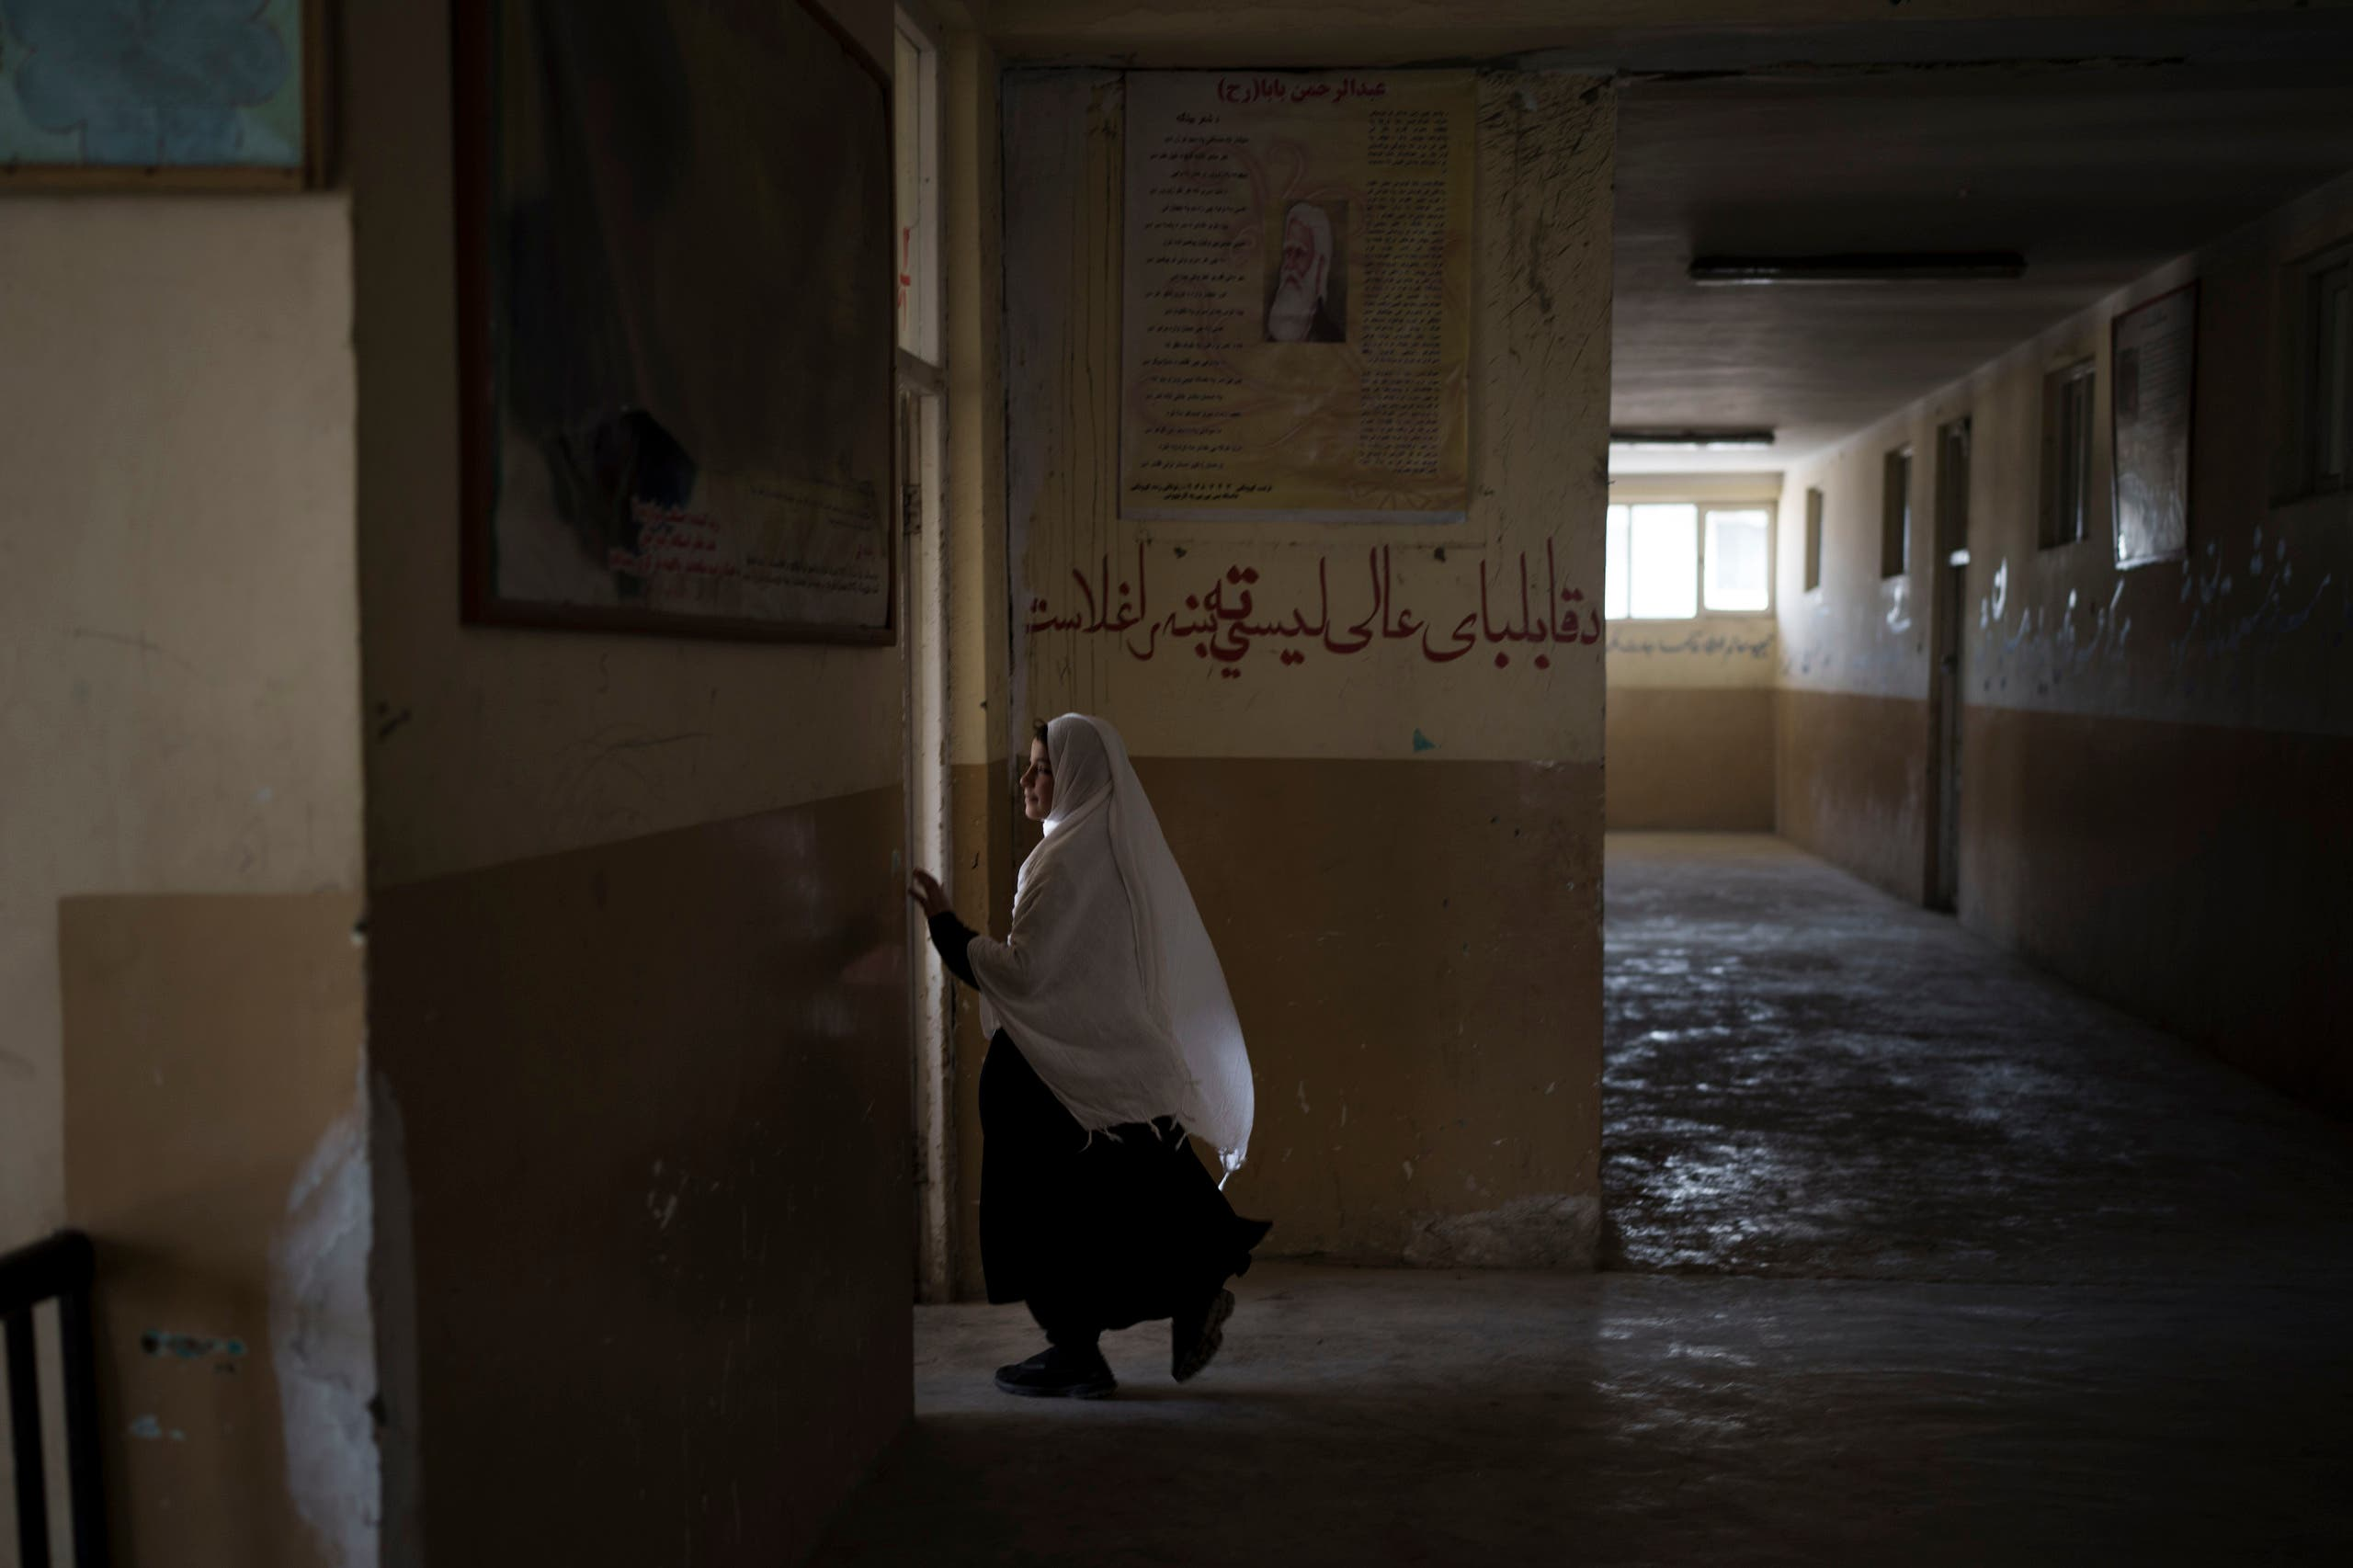 A shy return for girls in some schools in Afghanistan, with the exception of Kabul